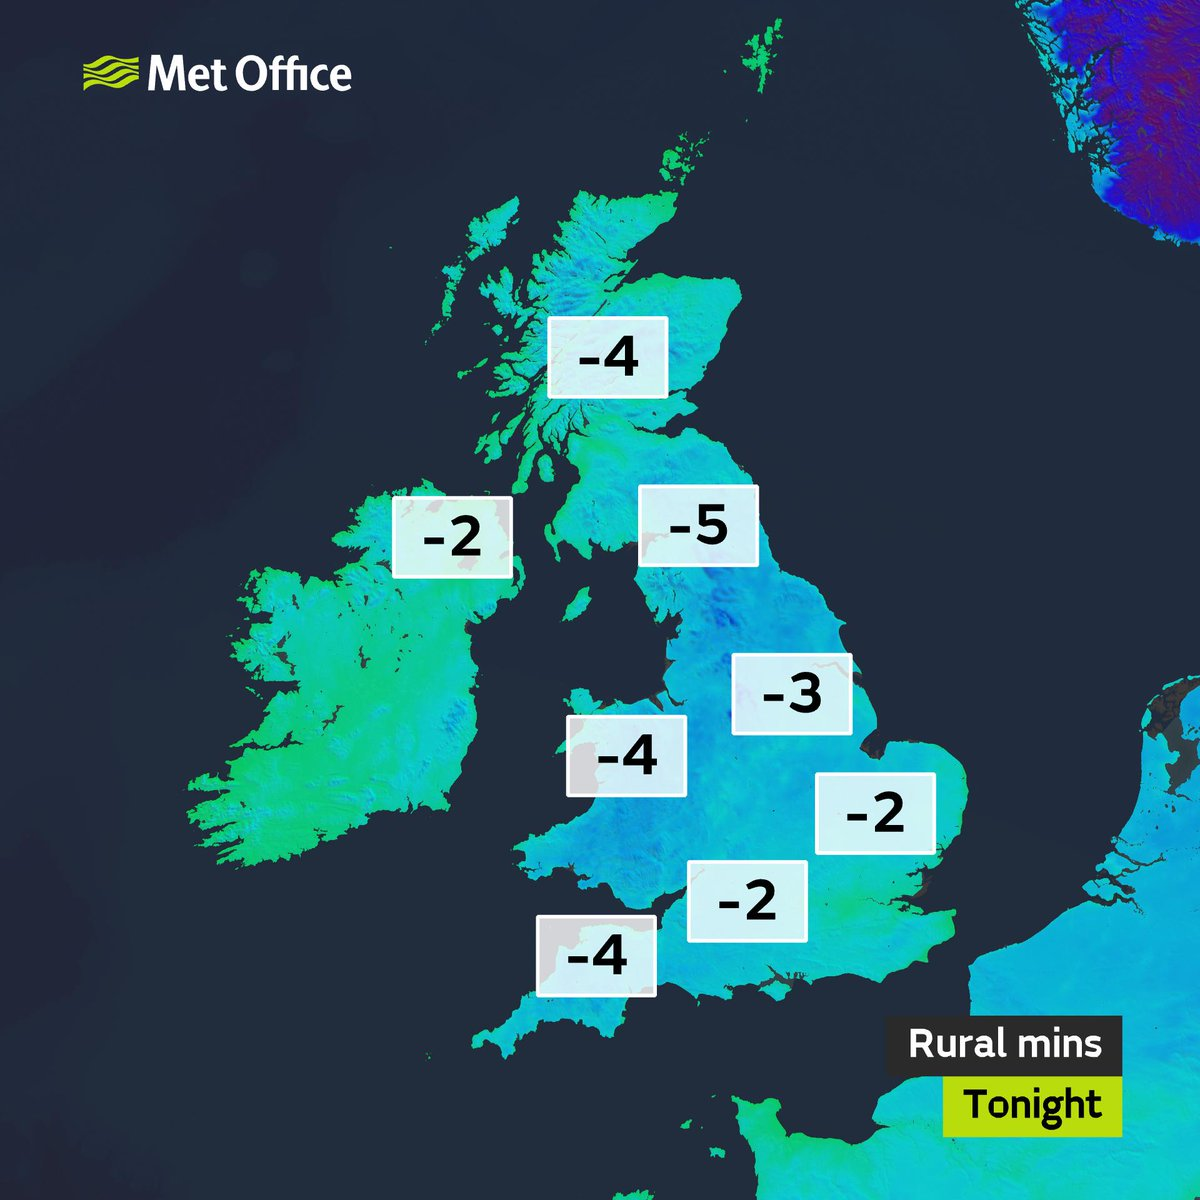 It's going to be a #cold one tonight with a severe #frost in places, so whatever you're doing stay warm